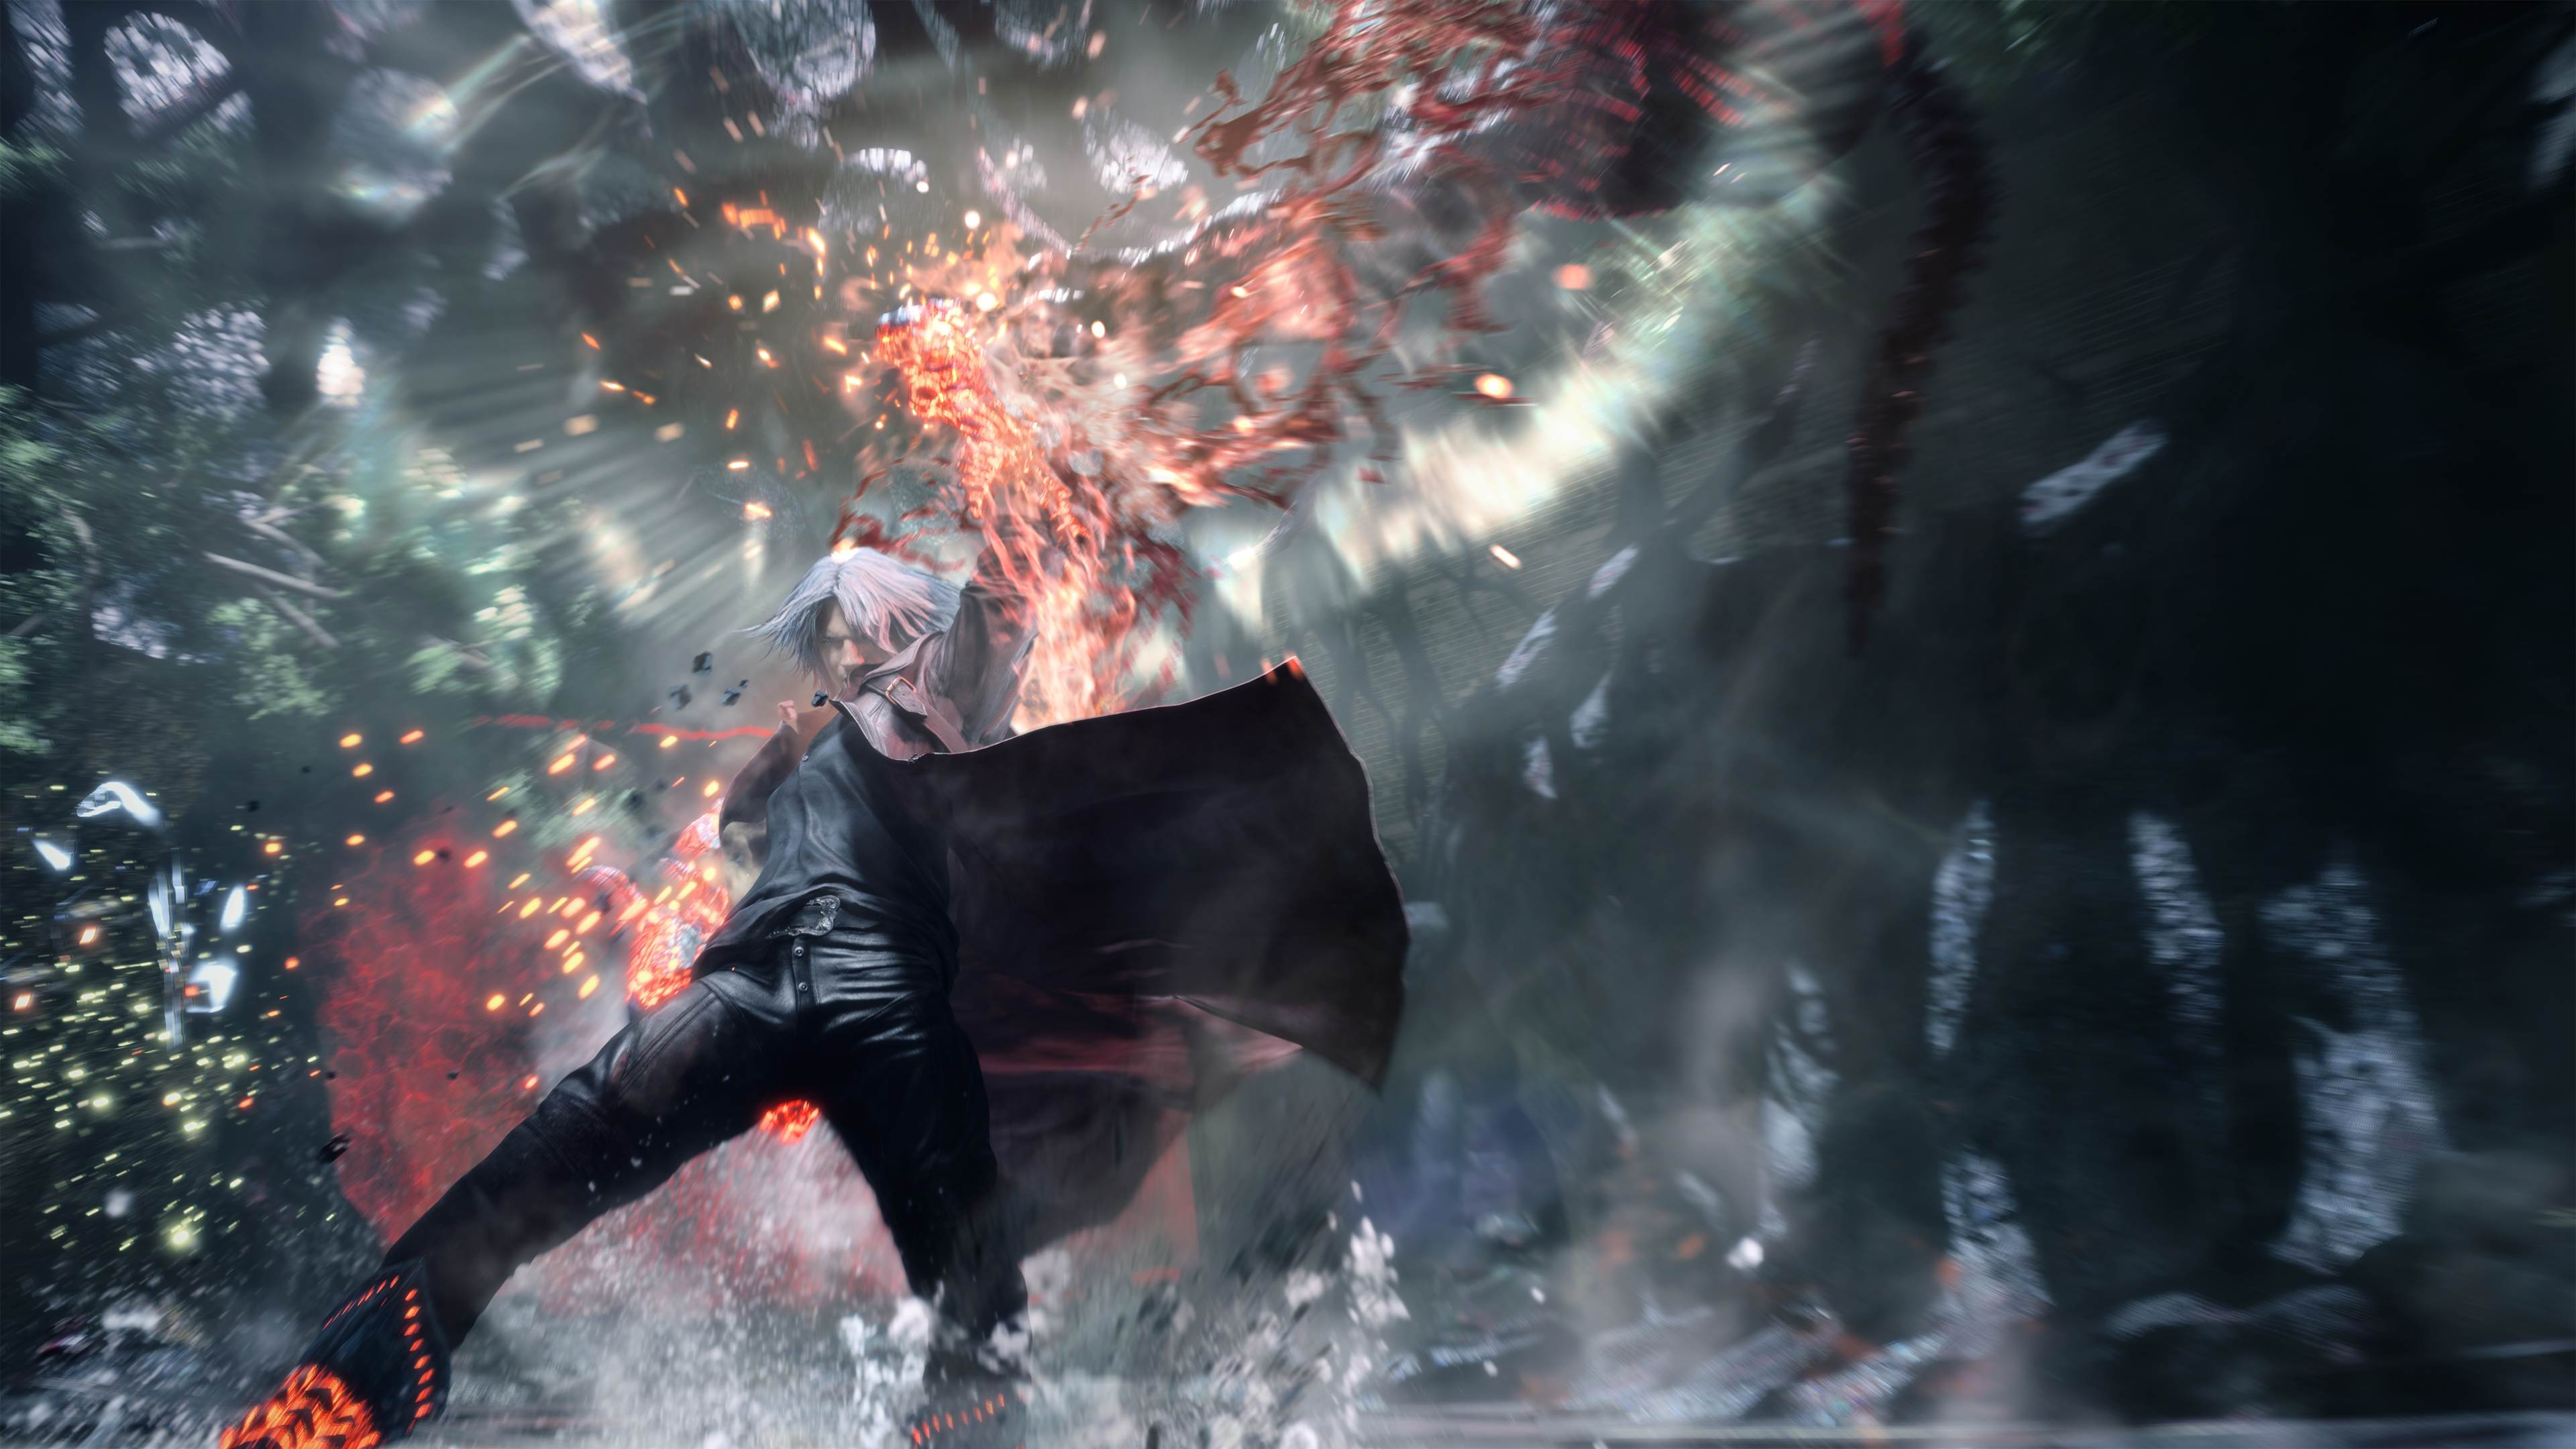 Devil May Cry 5 4k 2019 Game Hd Games 4k Wallpapers